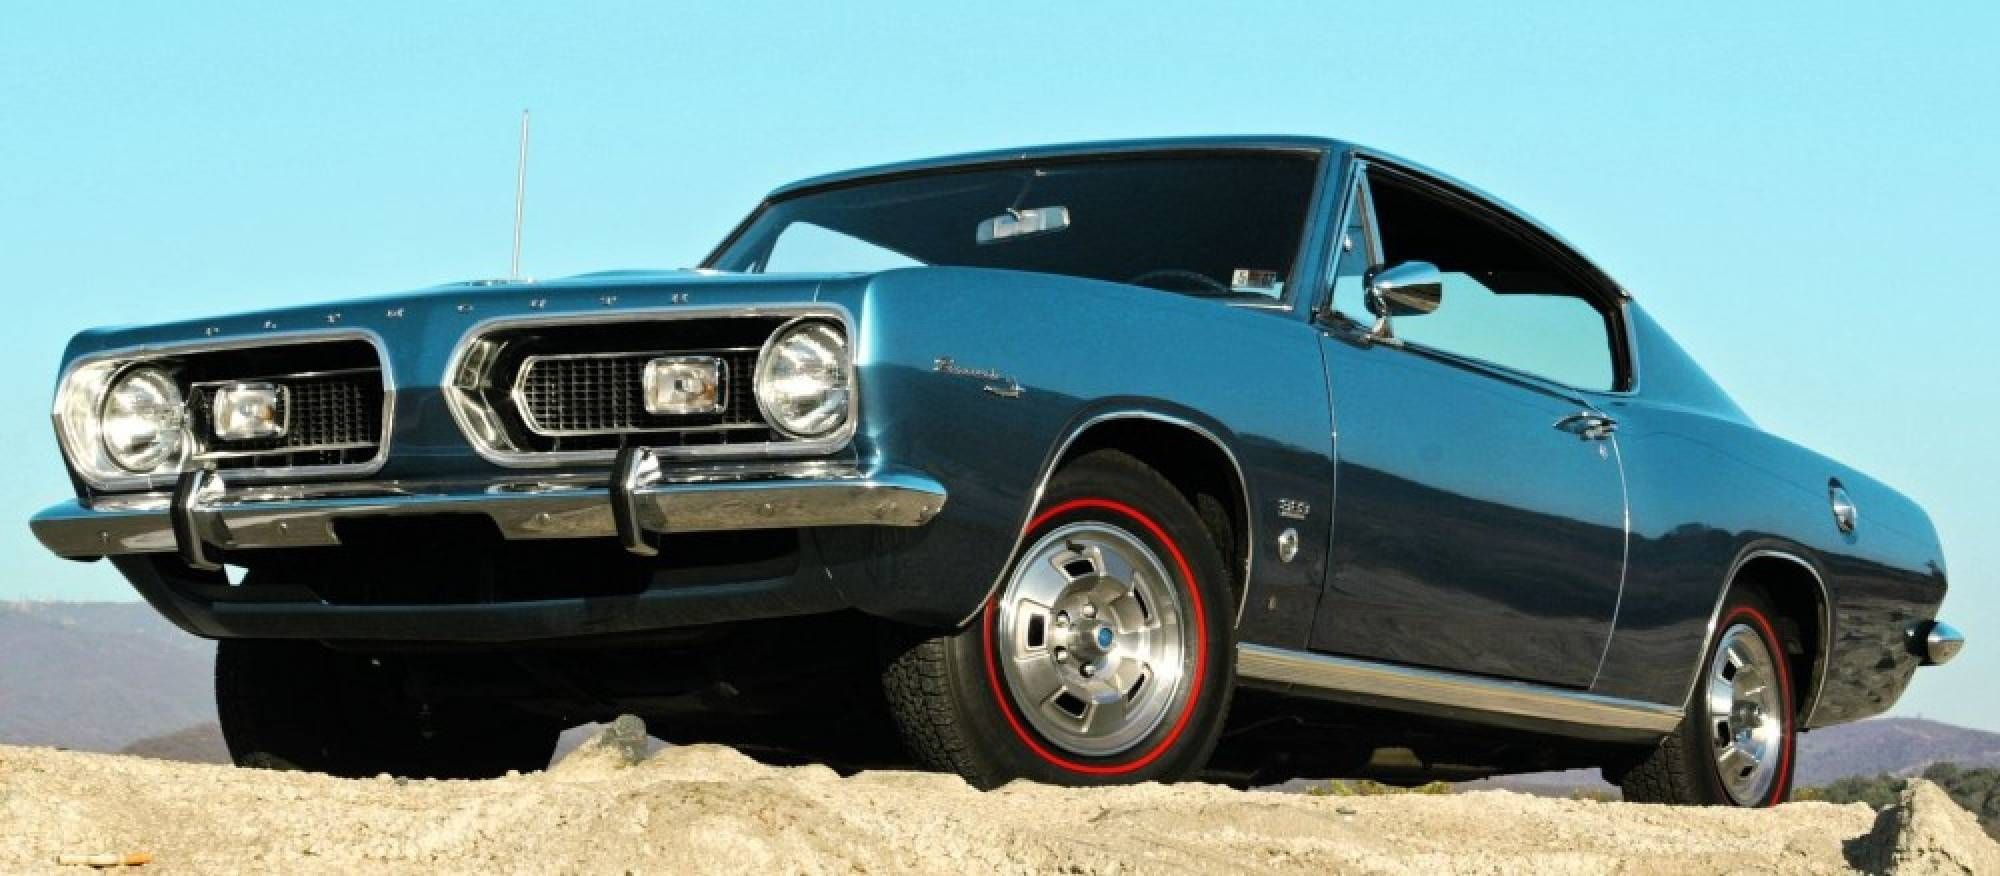 1967-\'69 Plymouth Barracuda - Compact Plymouth with gran turismo ...